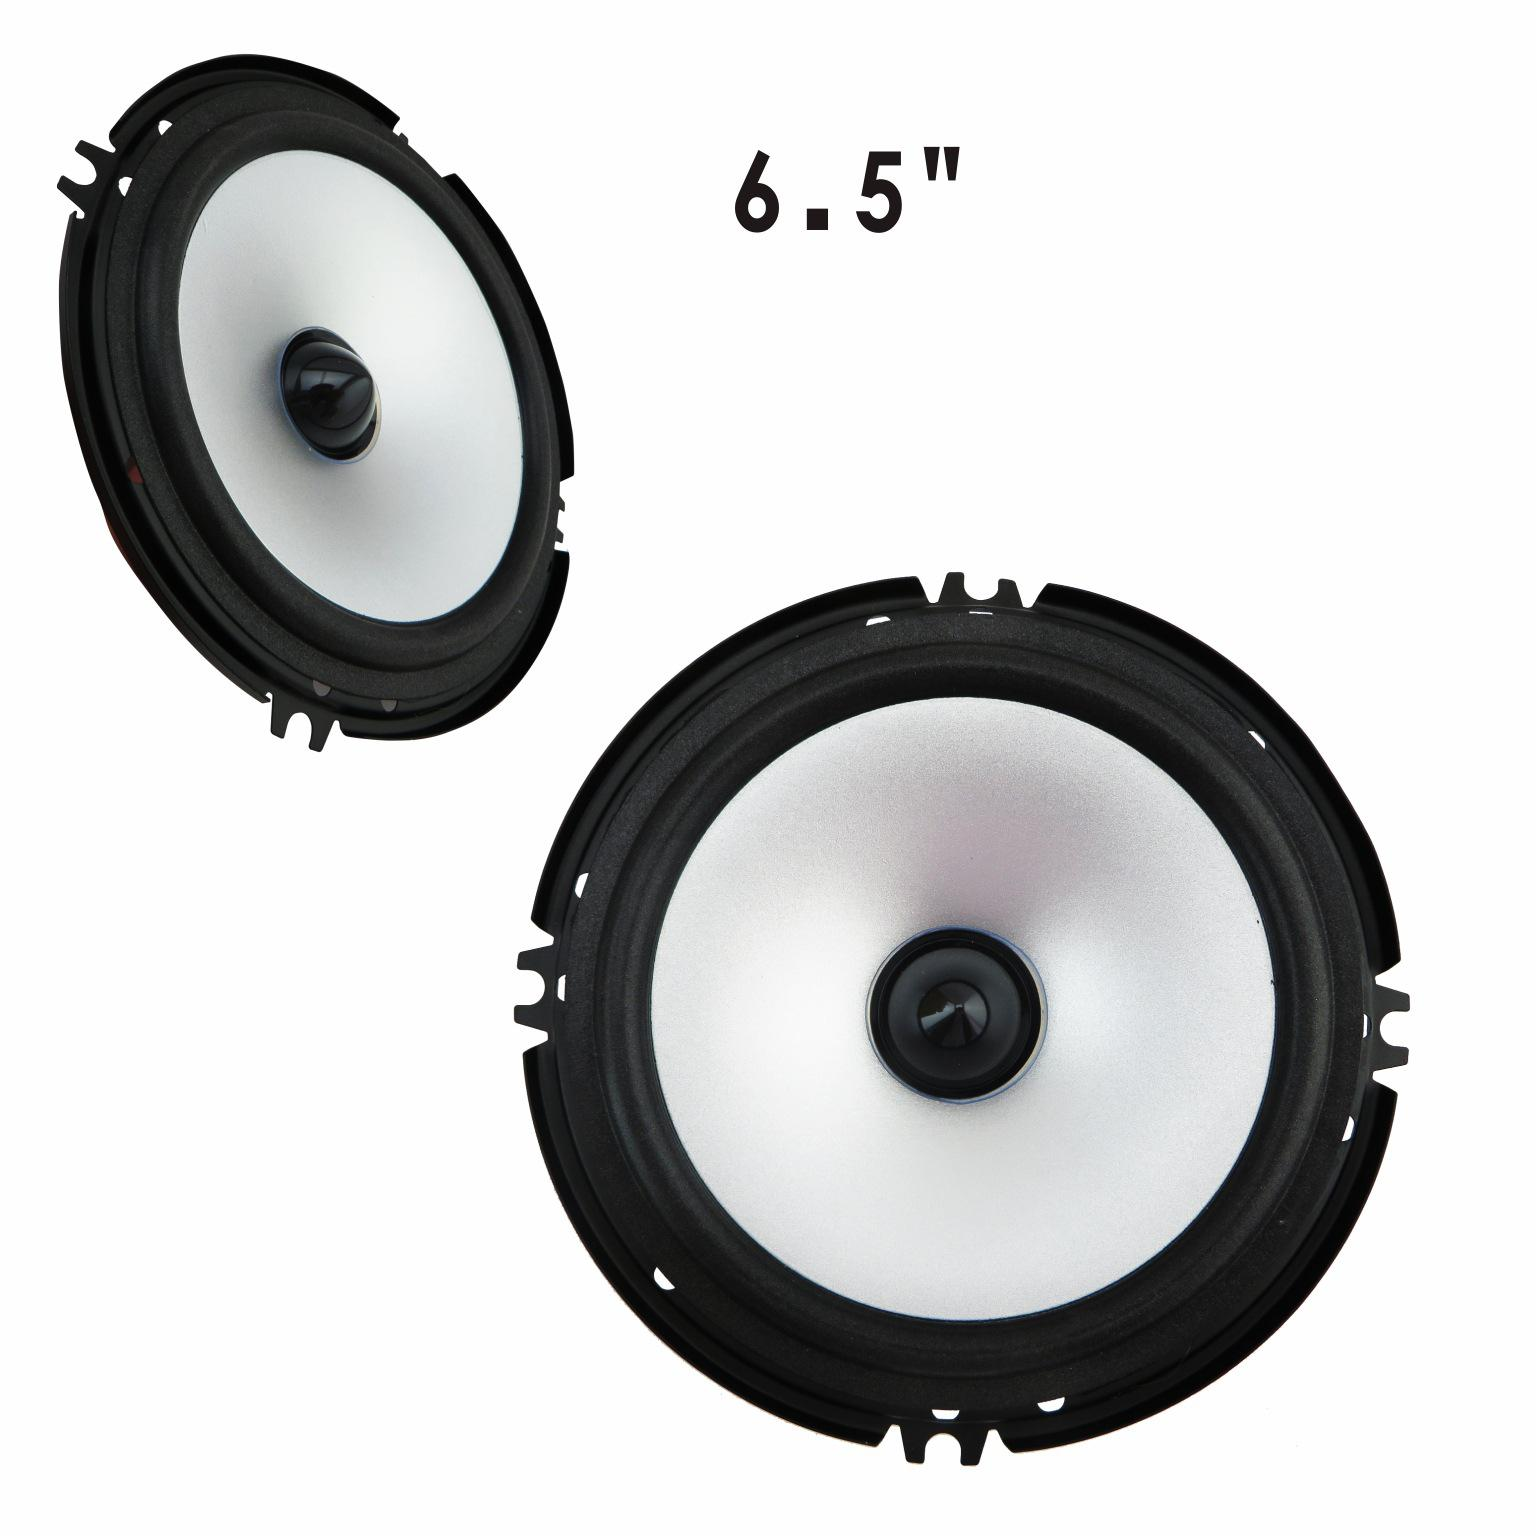 2017 Hot Sale 6.5 Inches Speakers For Auto Music Sensitivity Car Audio Speakers Full-range Full-range Car Horn Audio System 2017 hot bluetooth multi function audio intelligent family host background music system lcd screen touch light dimmer 2 speakers